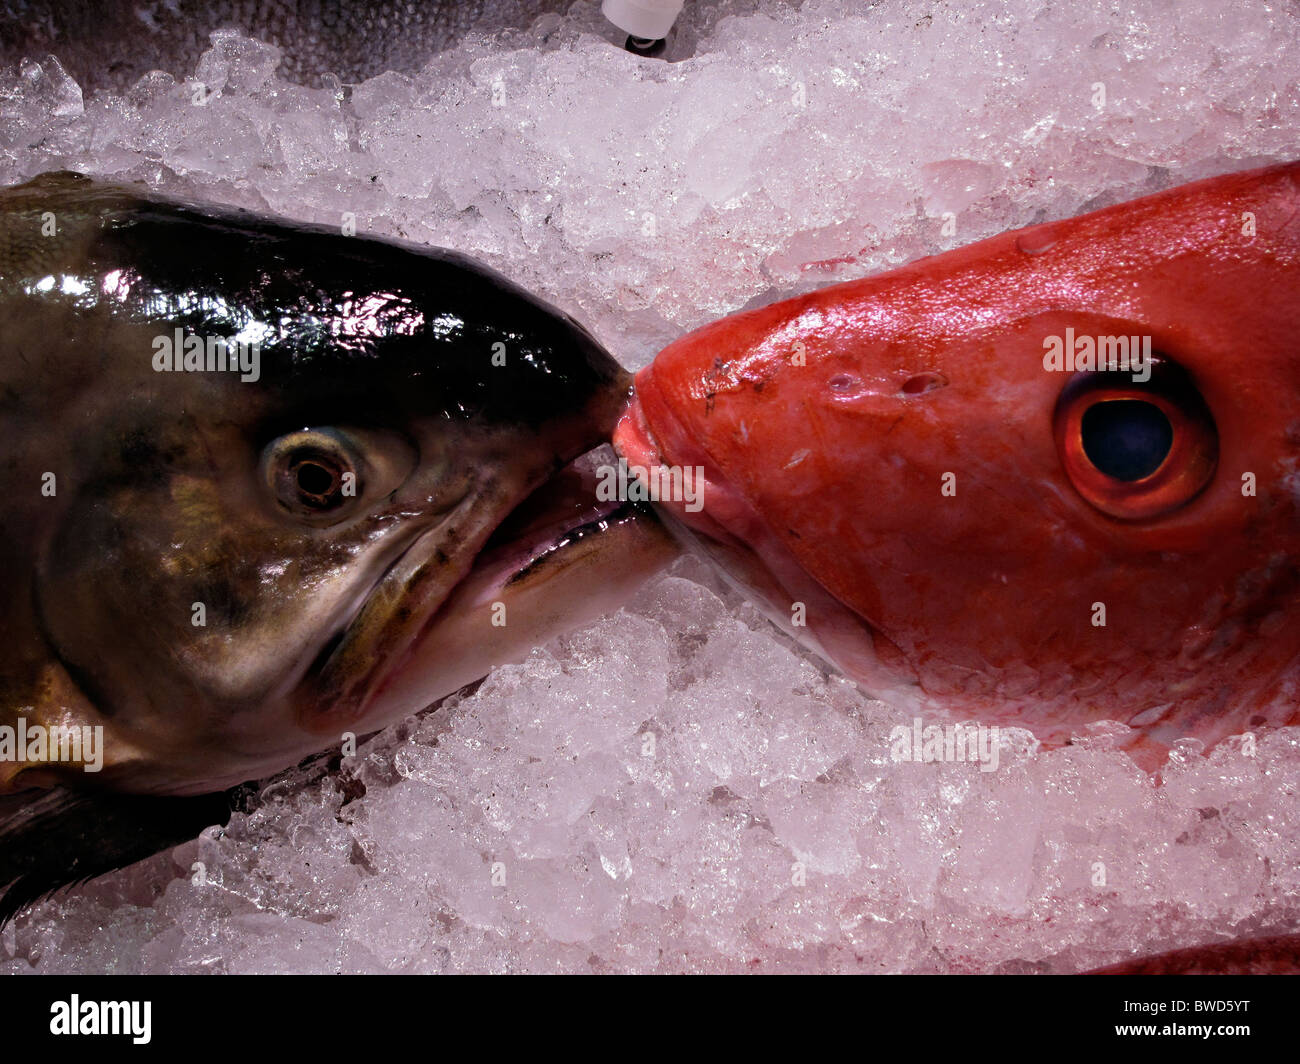 Kissing Fish Stock Photos & Kissing Fish Stock Images - Alamy